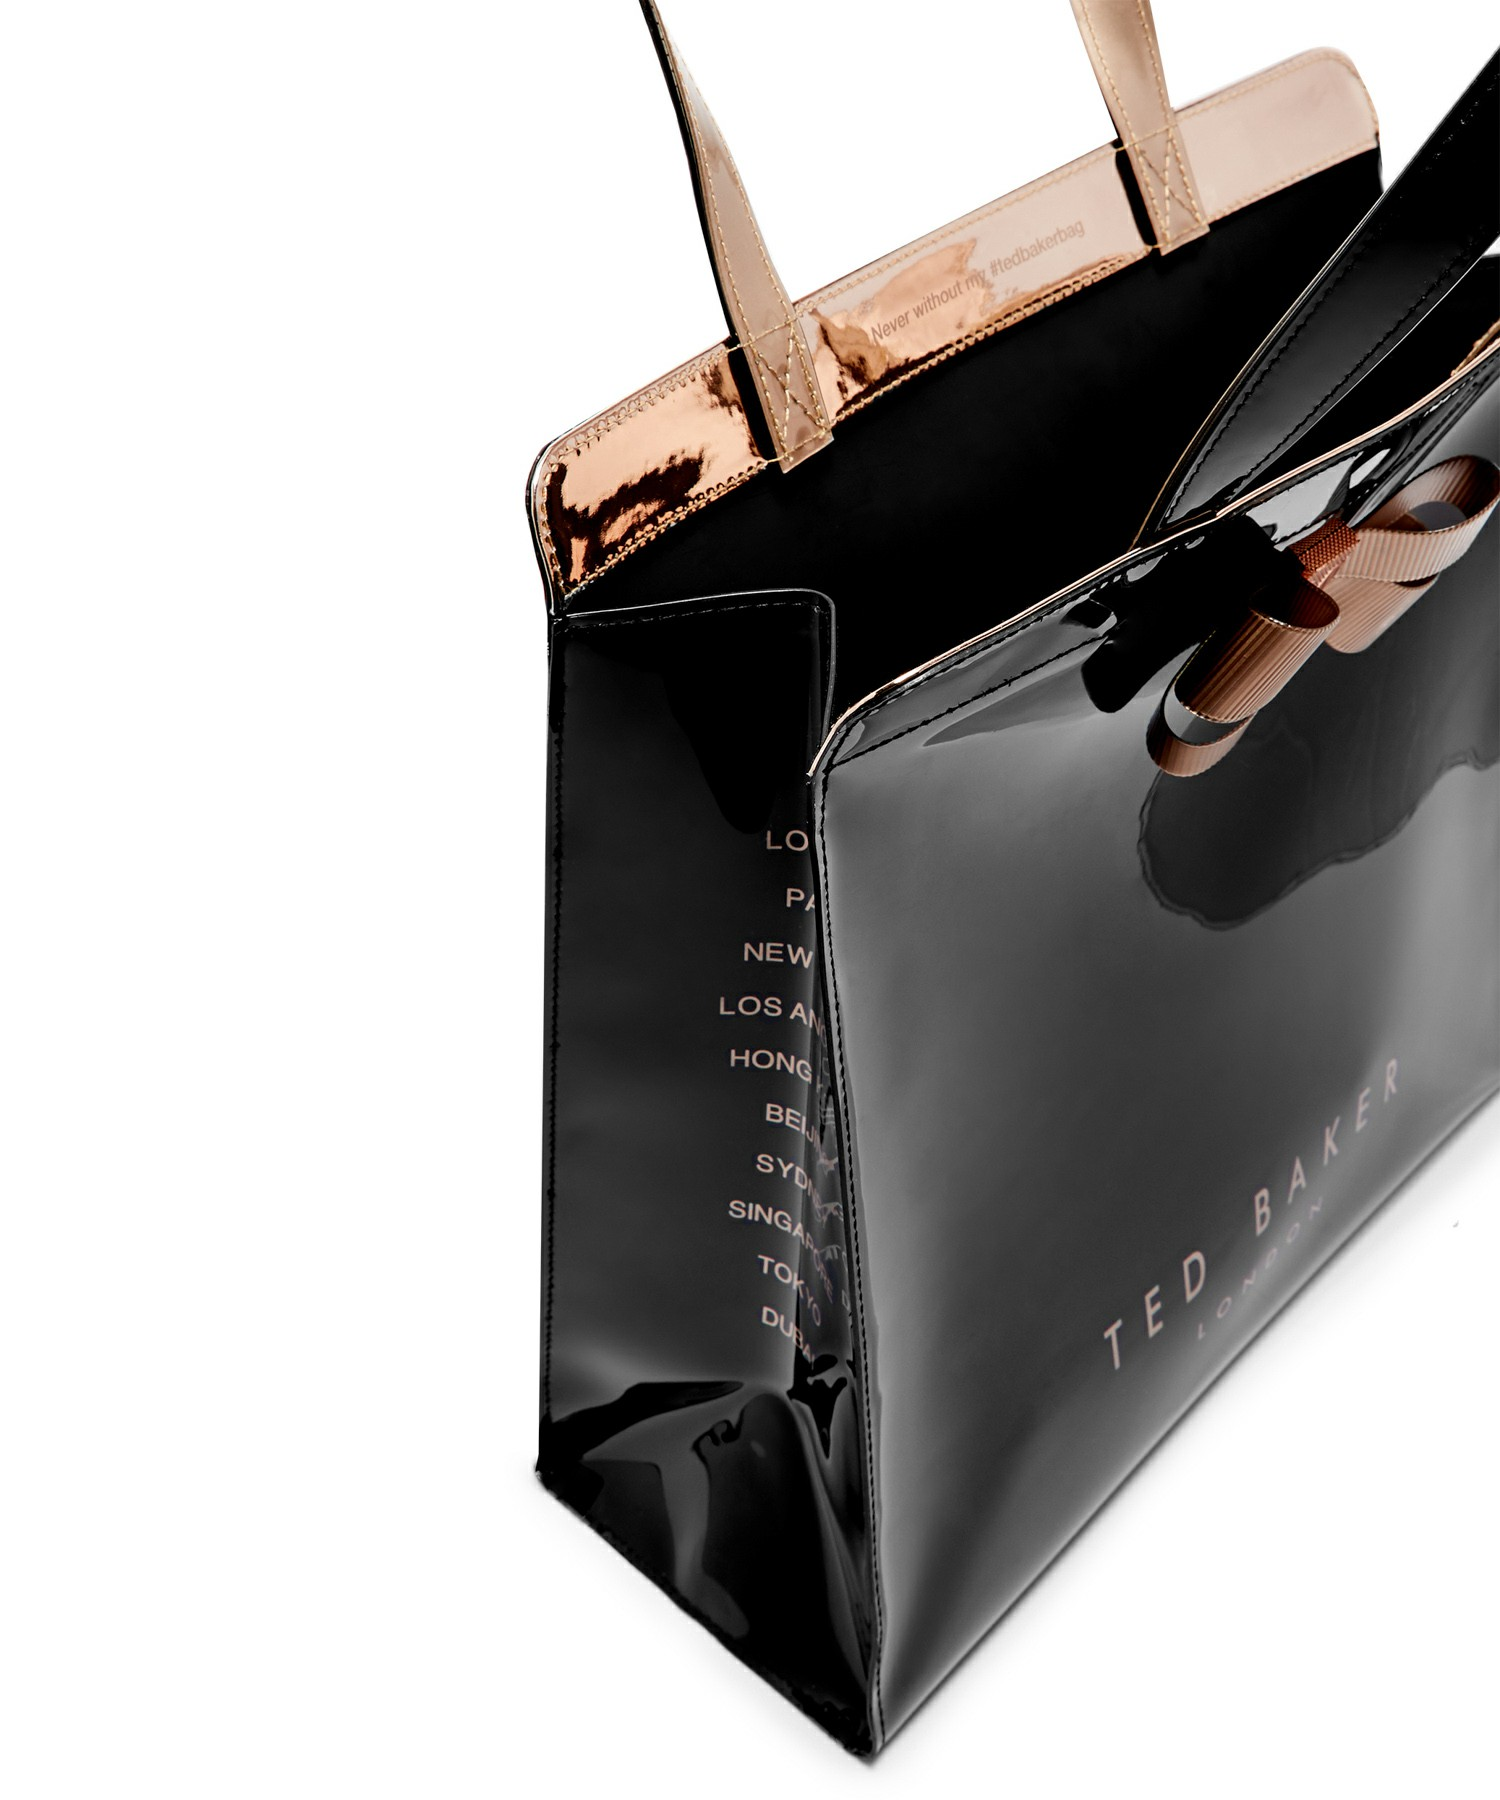 Ted Baker(テッドベーカー) エナメルトートバッグ